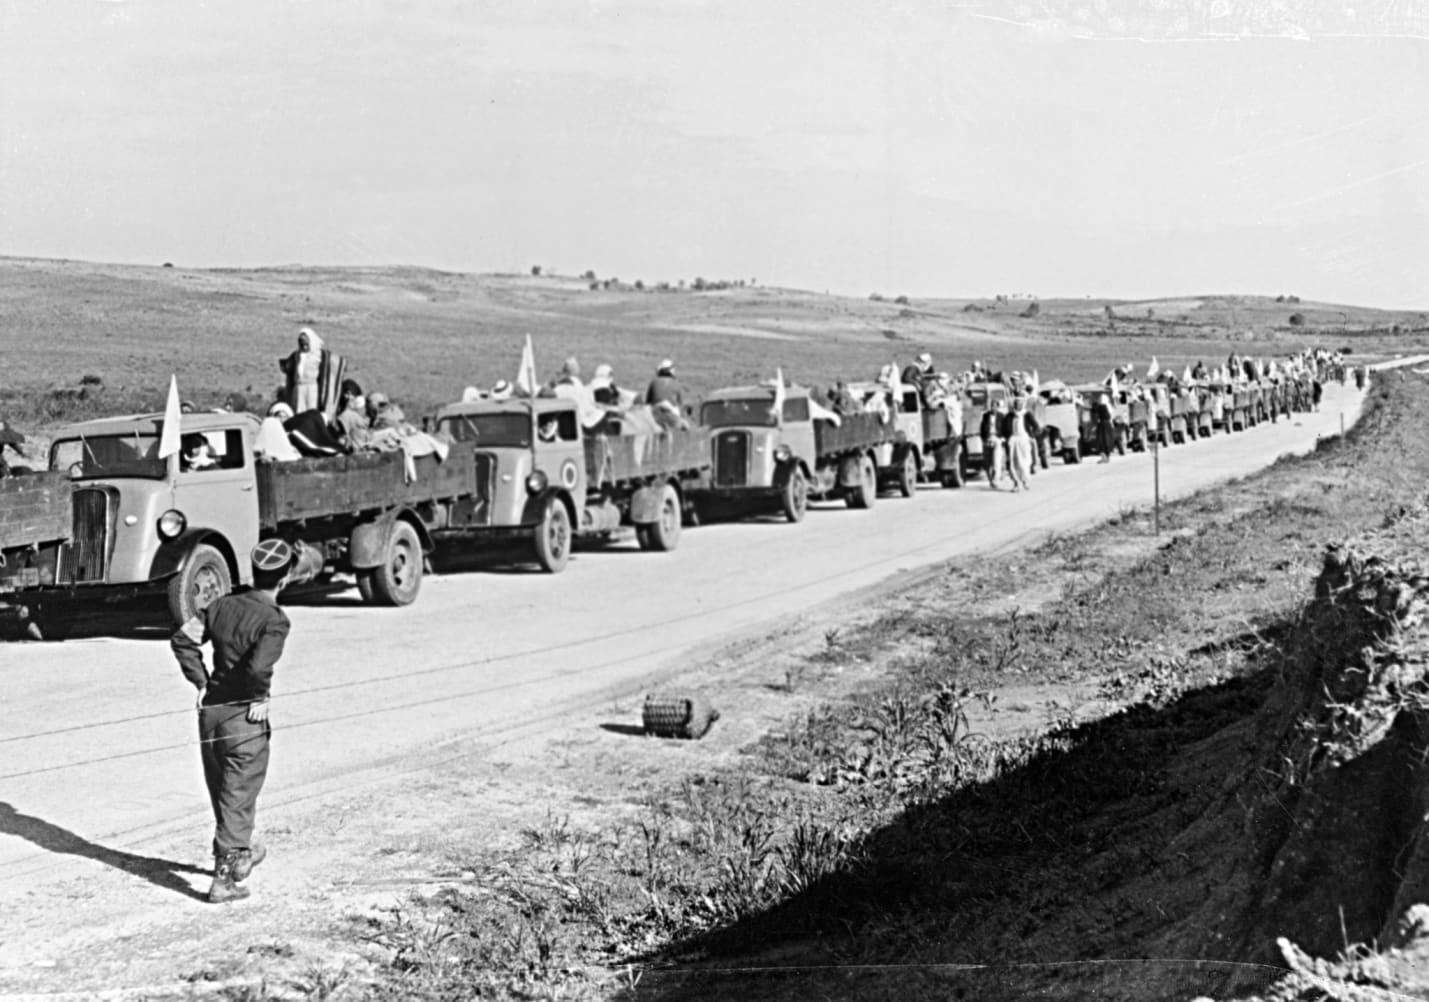 Palestinian refugees leaving their village, unknown location, 1948.